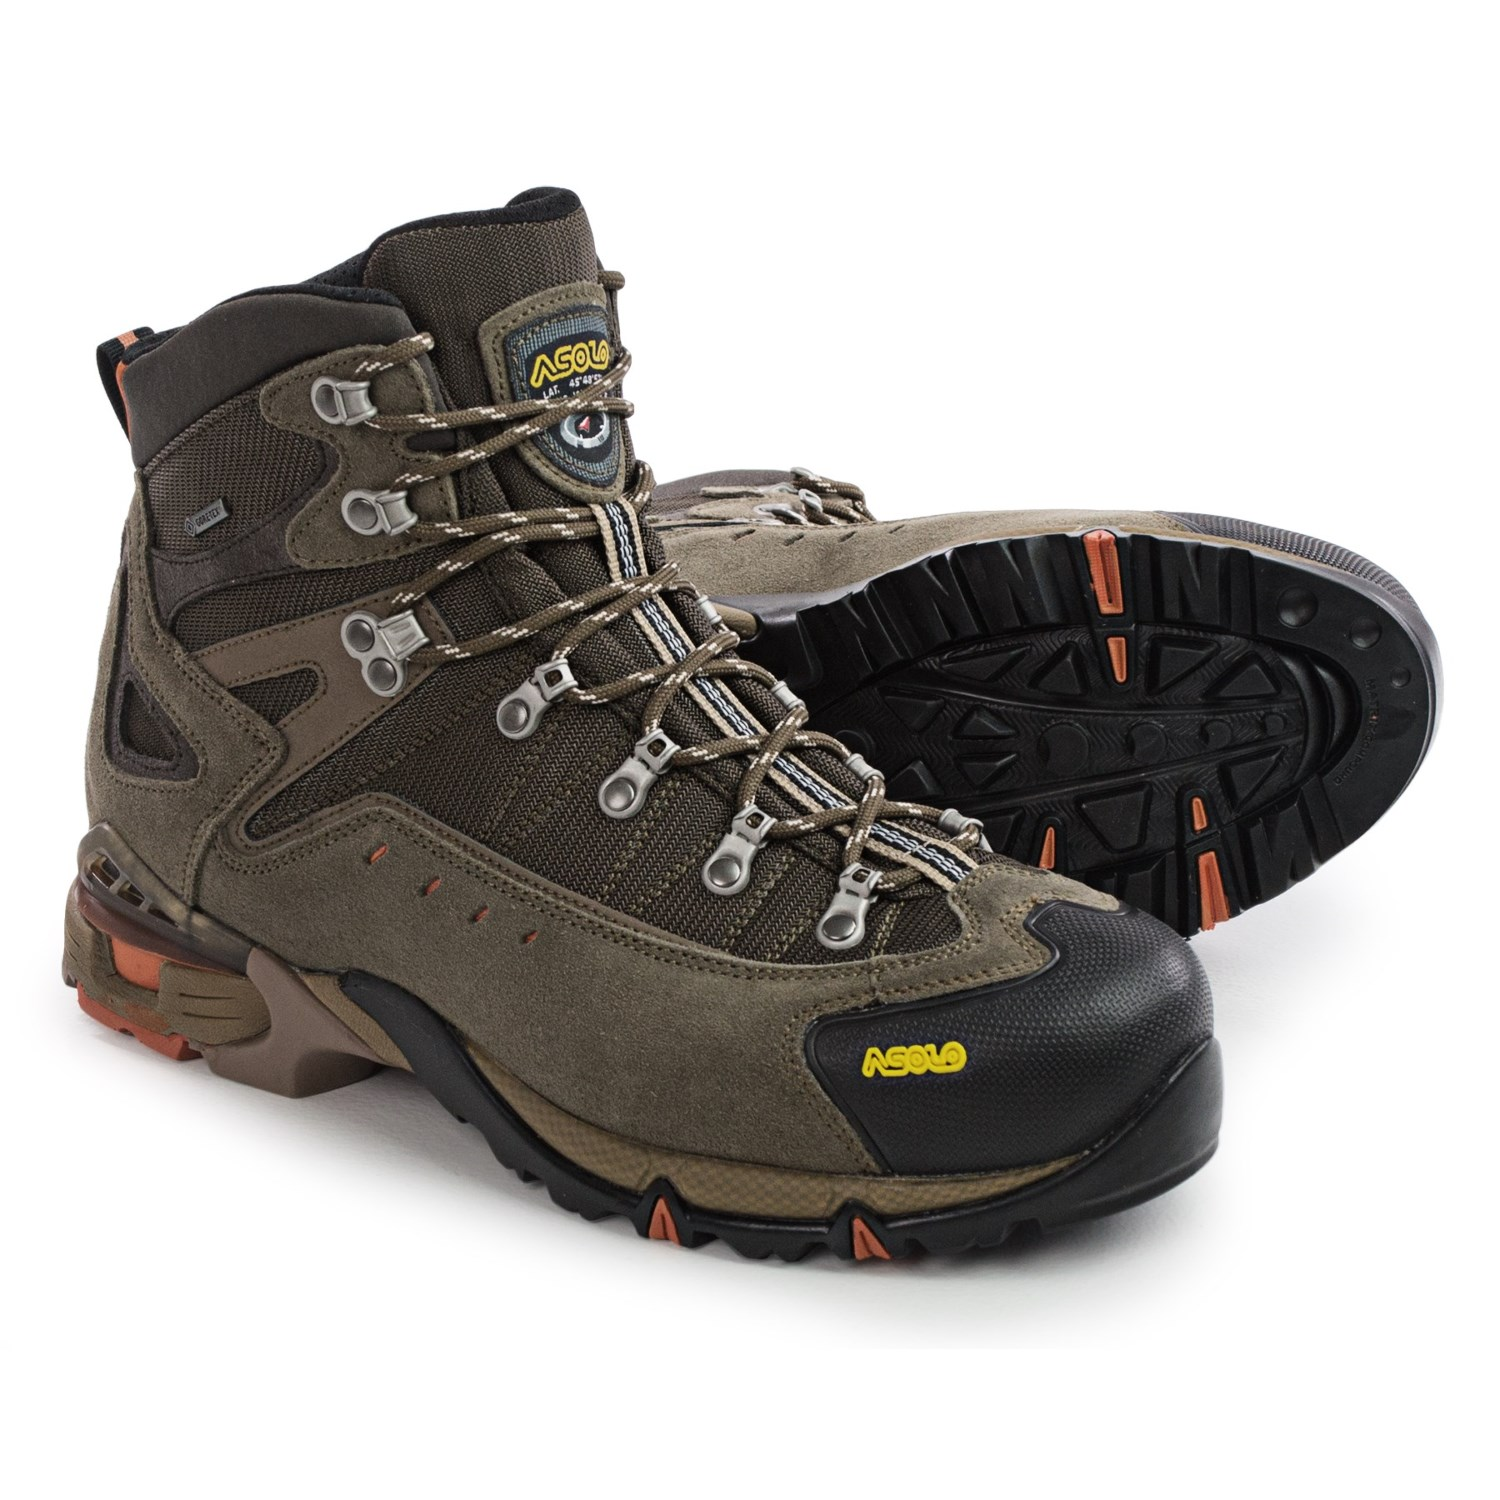 Asolo Flame Gore Tex 174 Hiking Boots For Men 9051c Save 37